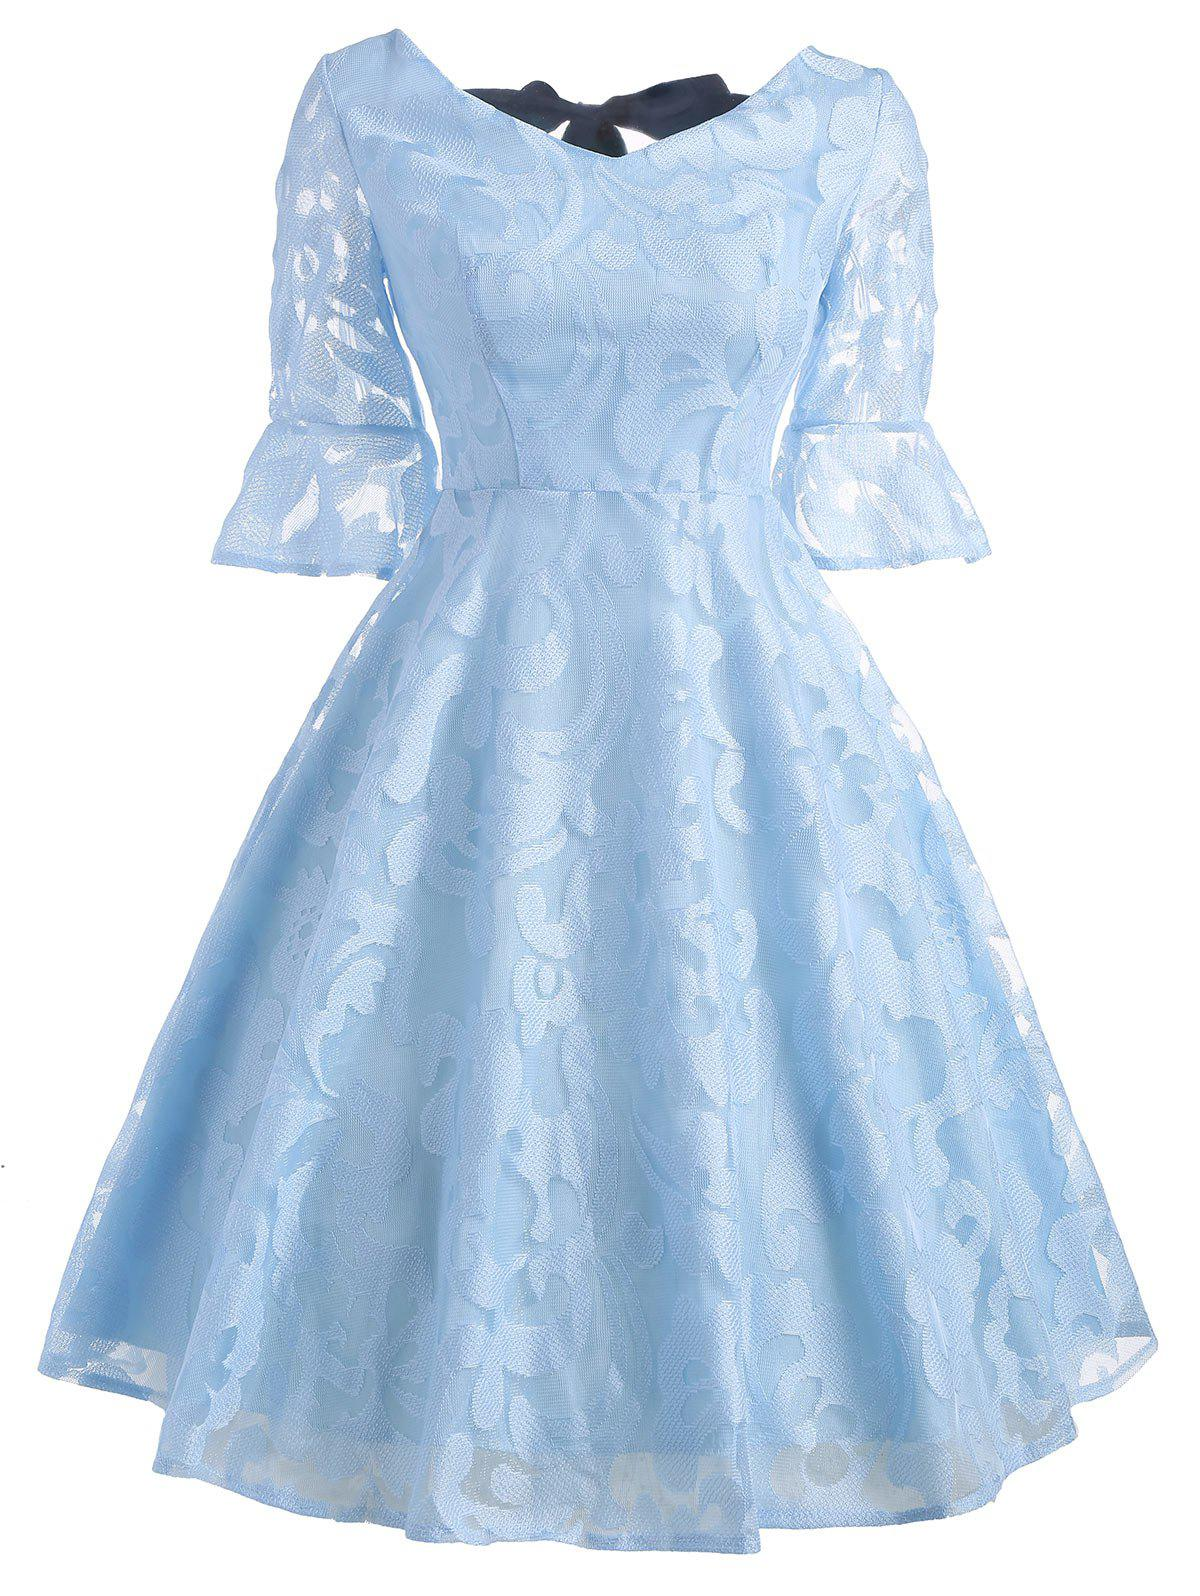 Bell Sleeve Bowknot Lace Dress - LIGHT BLUE S